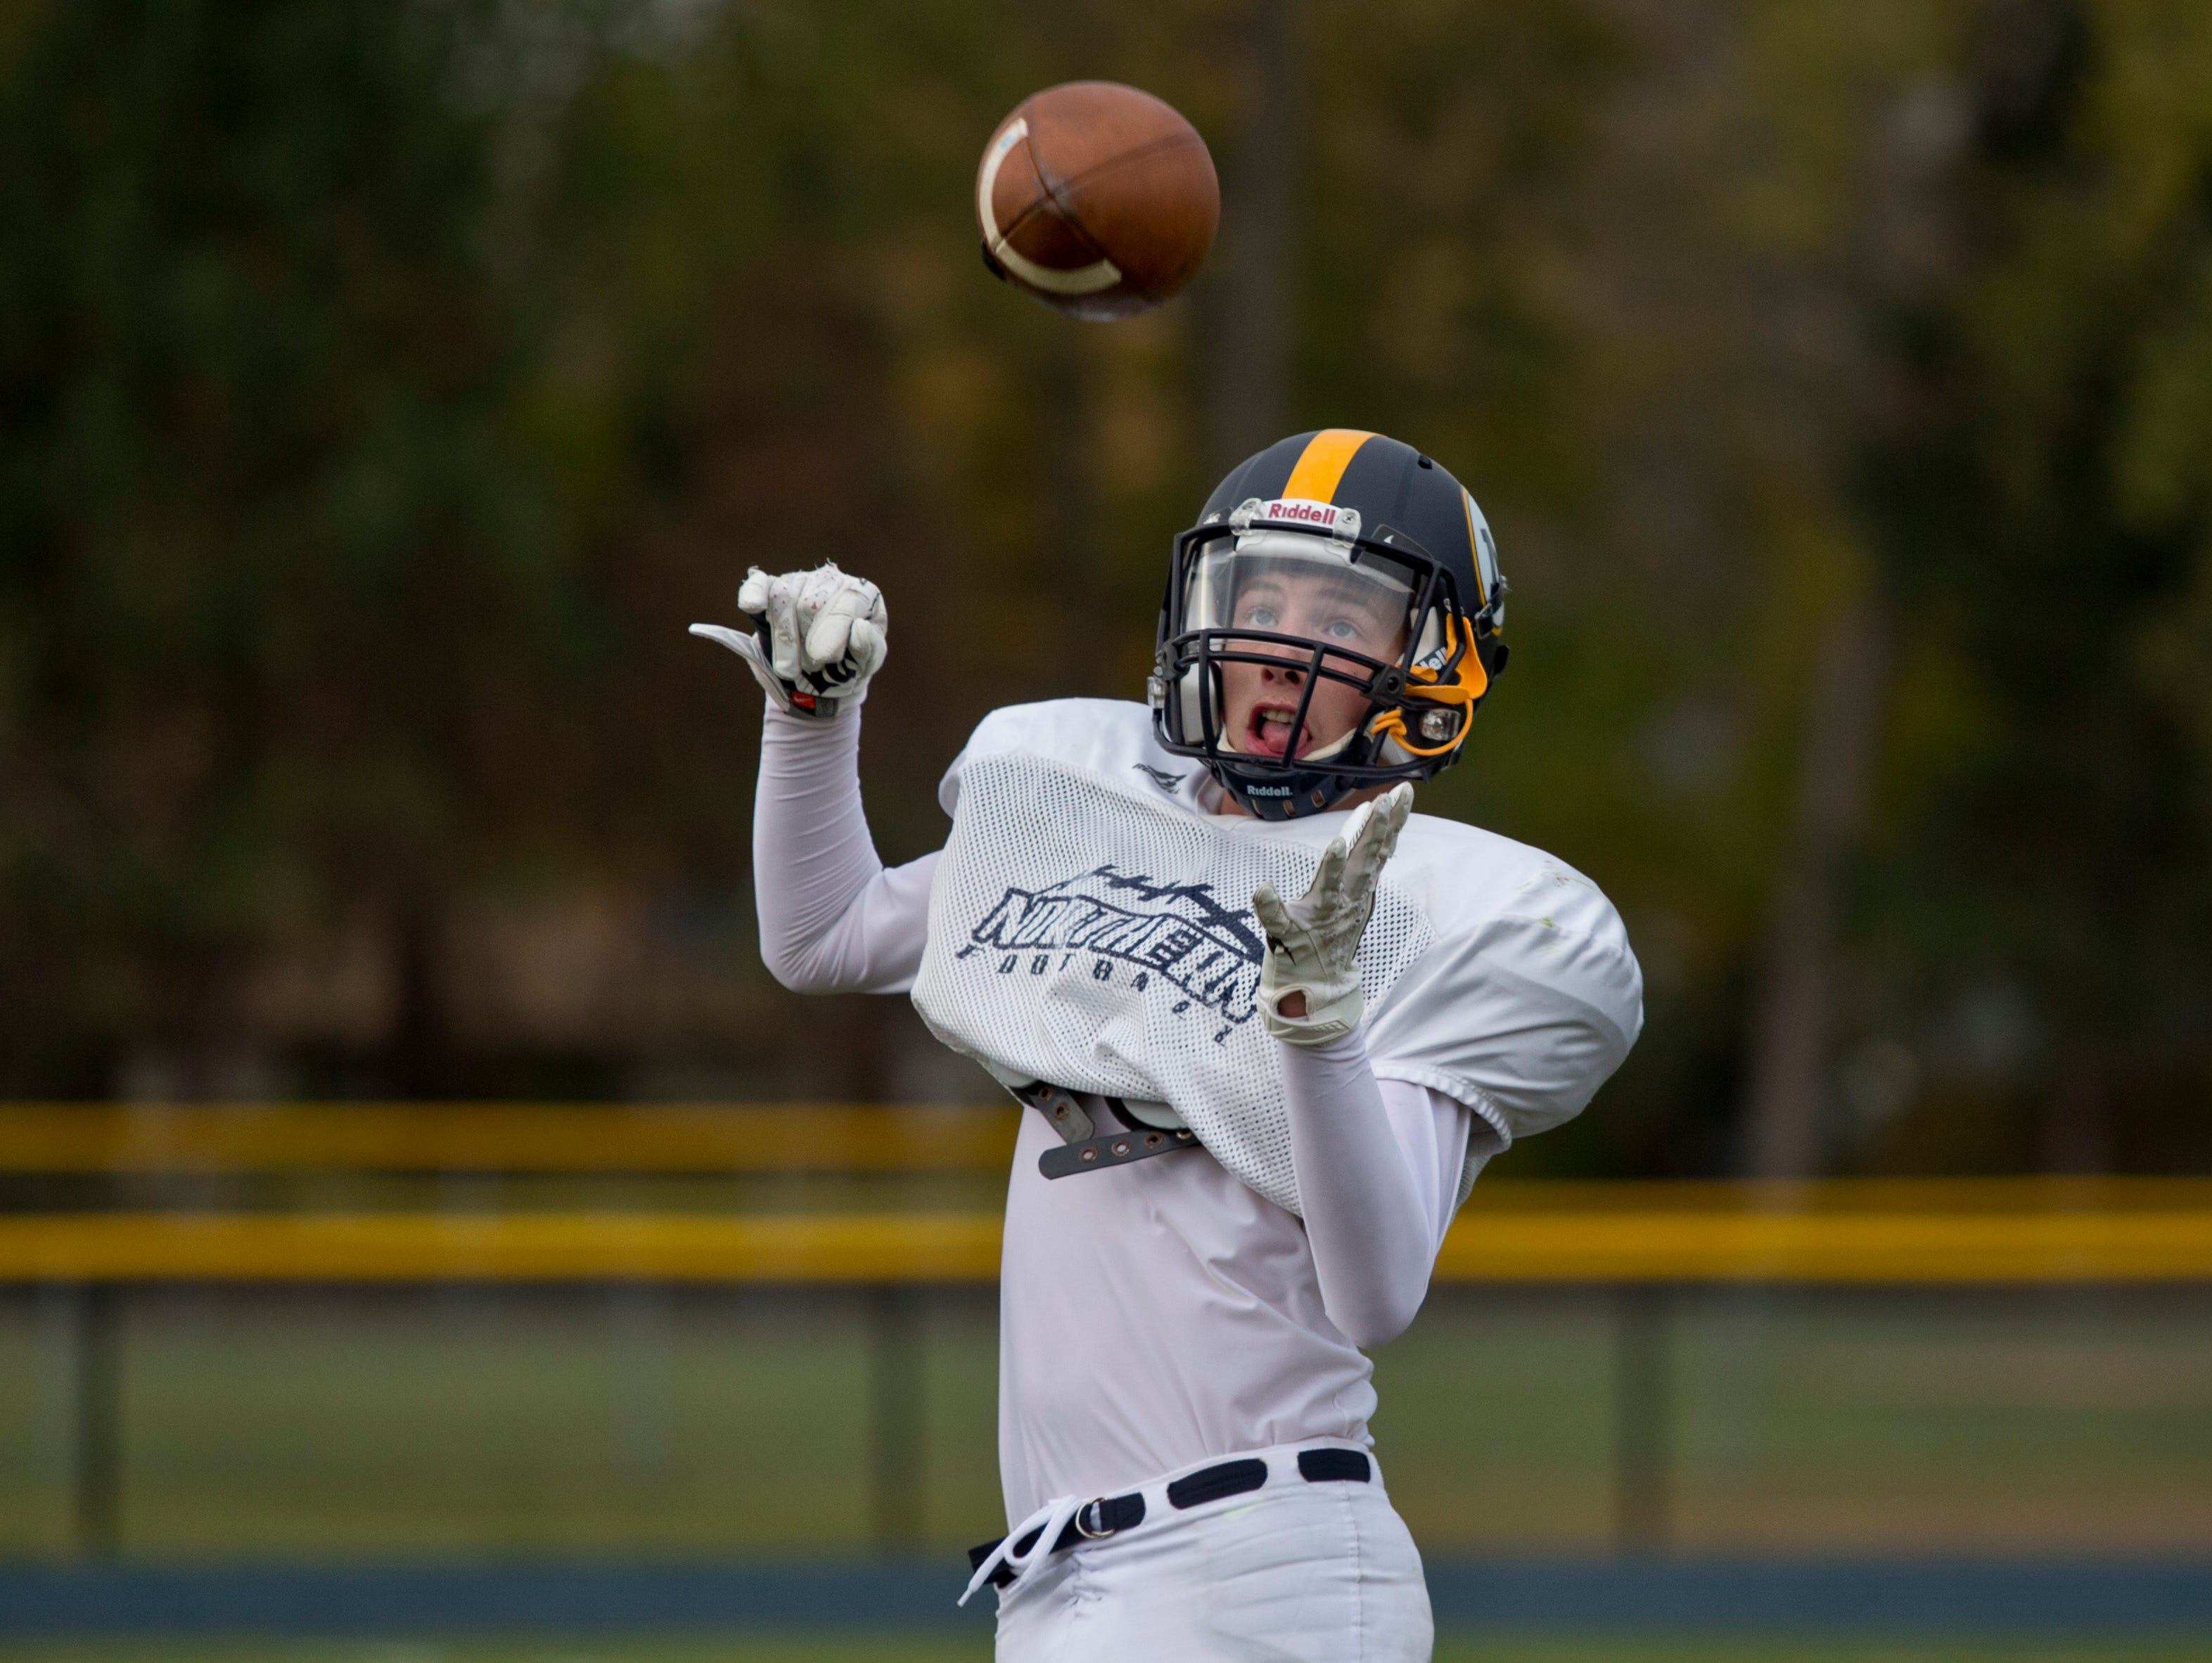 Senior Baily Aldea does a one-arm catch during practice Wednesday, October 21, 2015 at Port Huron Northern High School.